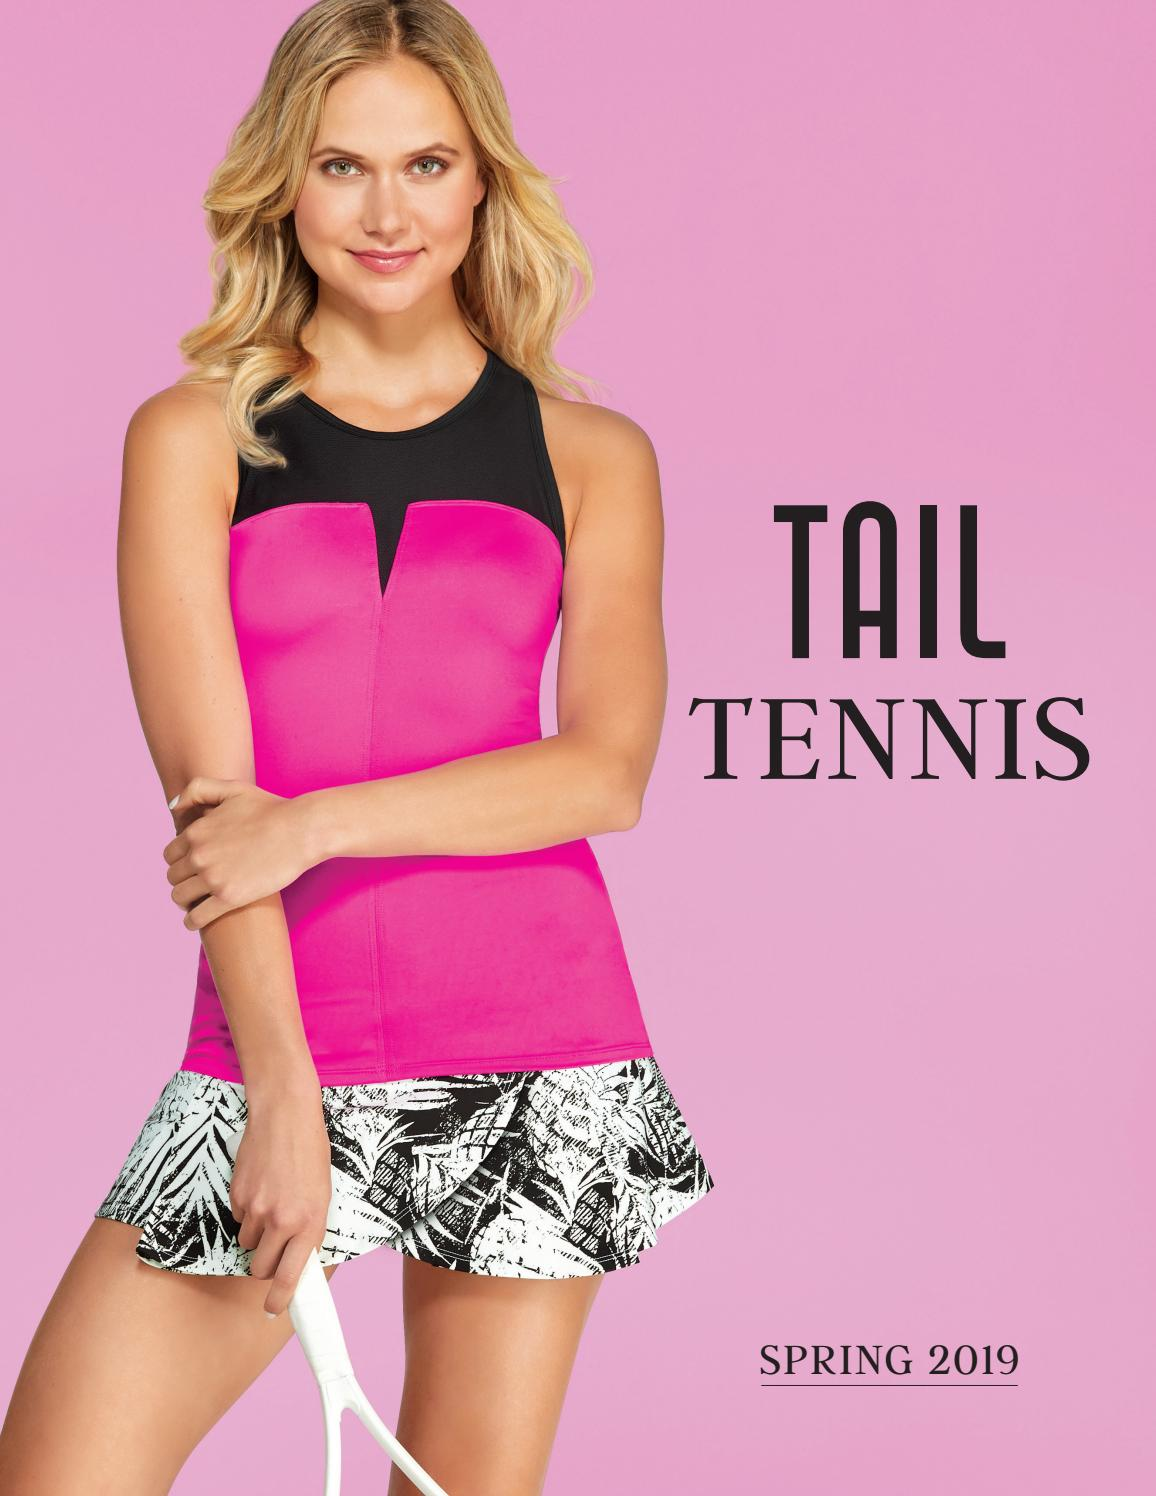 f338368adbfb5 Tail Activewear Spring '19 Tennis by Tail Activewear - issuu